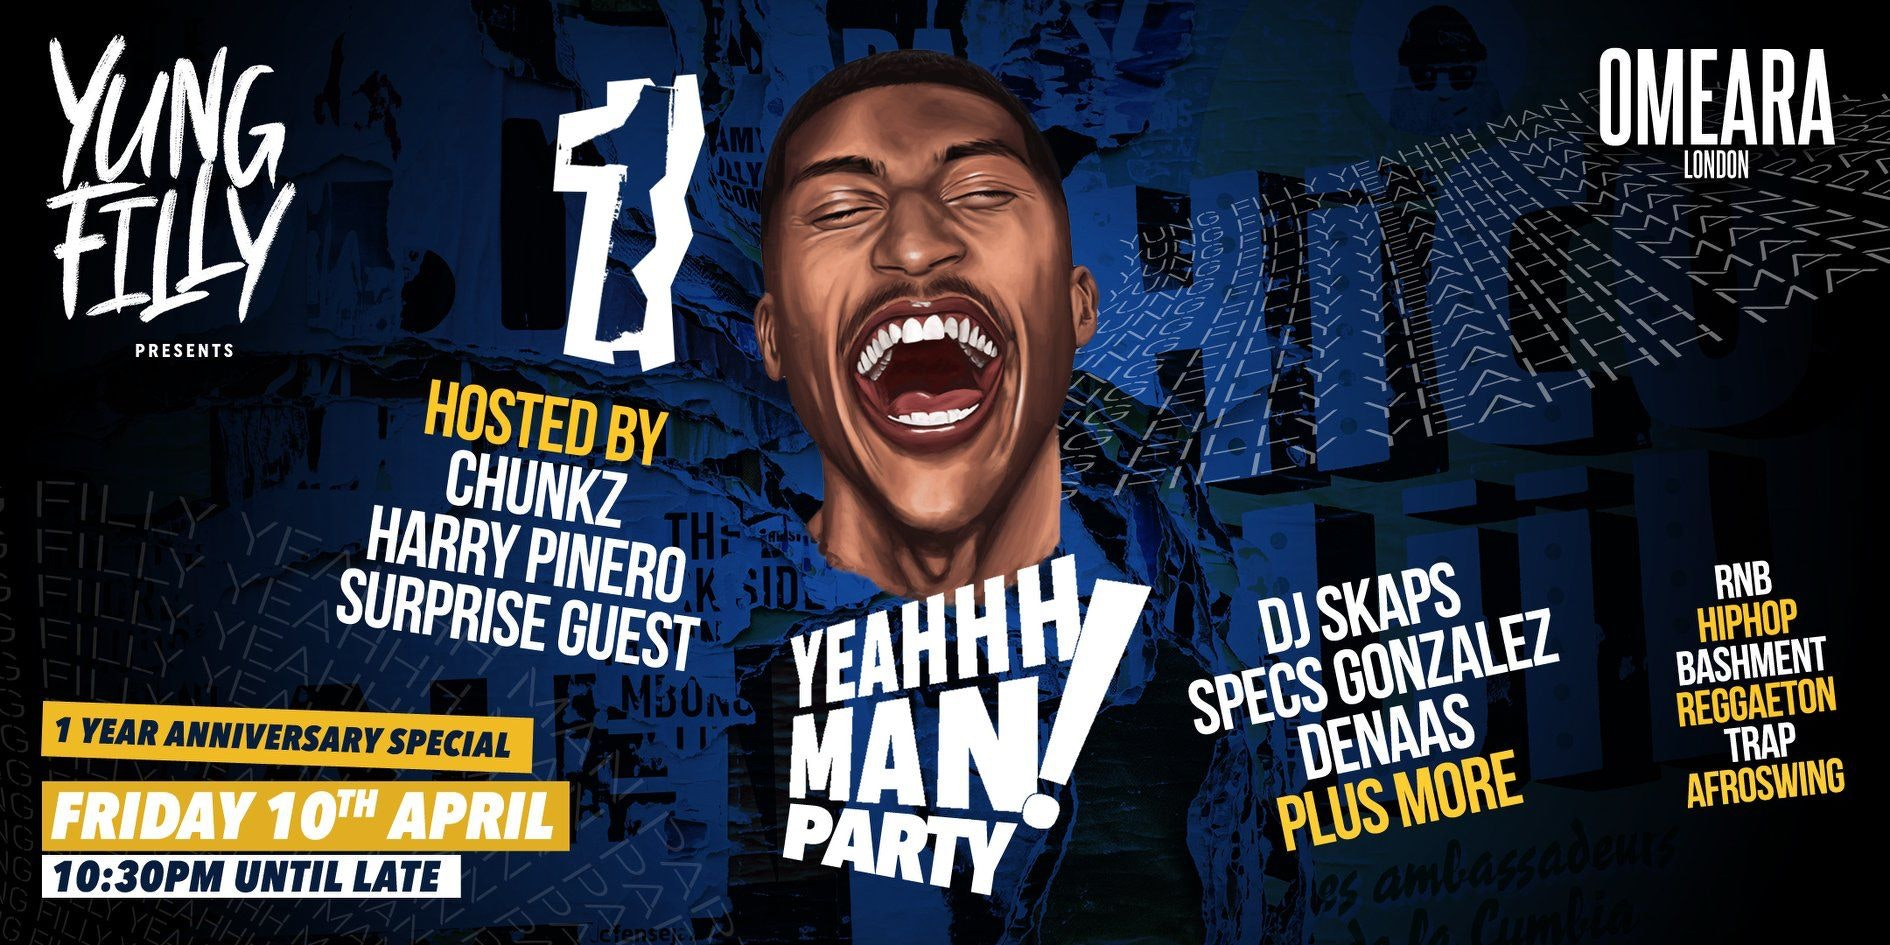 Yung Filly Presents: The YEAHHH MAN Party! | ft Chunkz, Harry Pinero, Skapps & Special Guests!